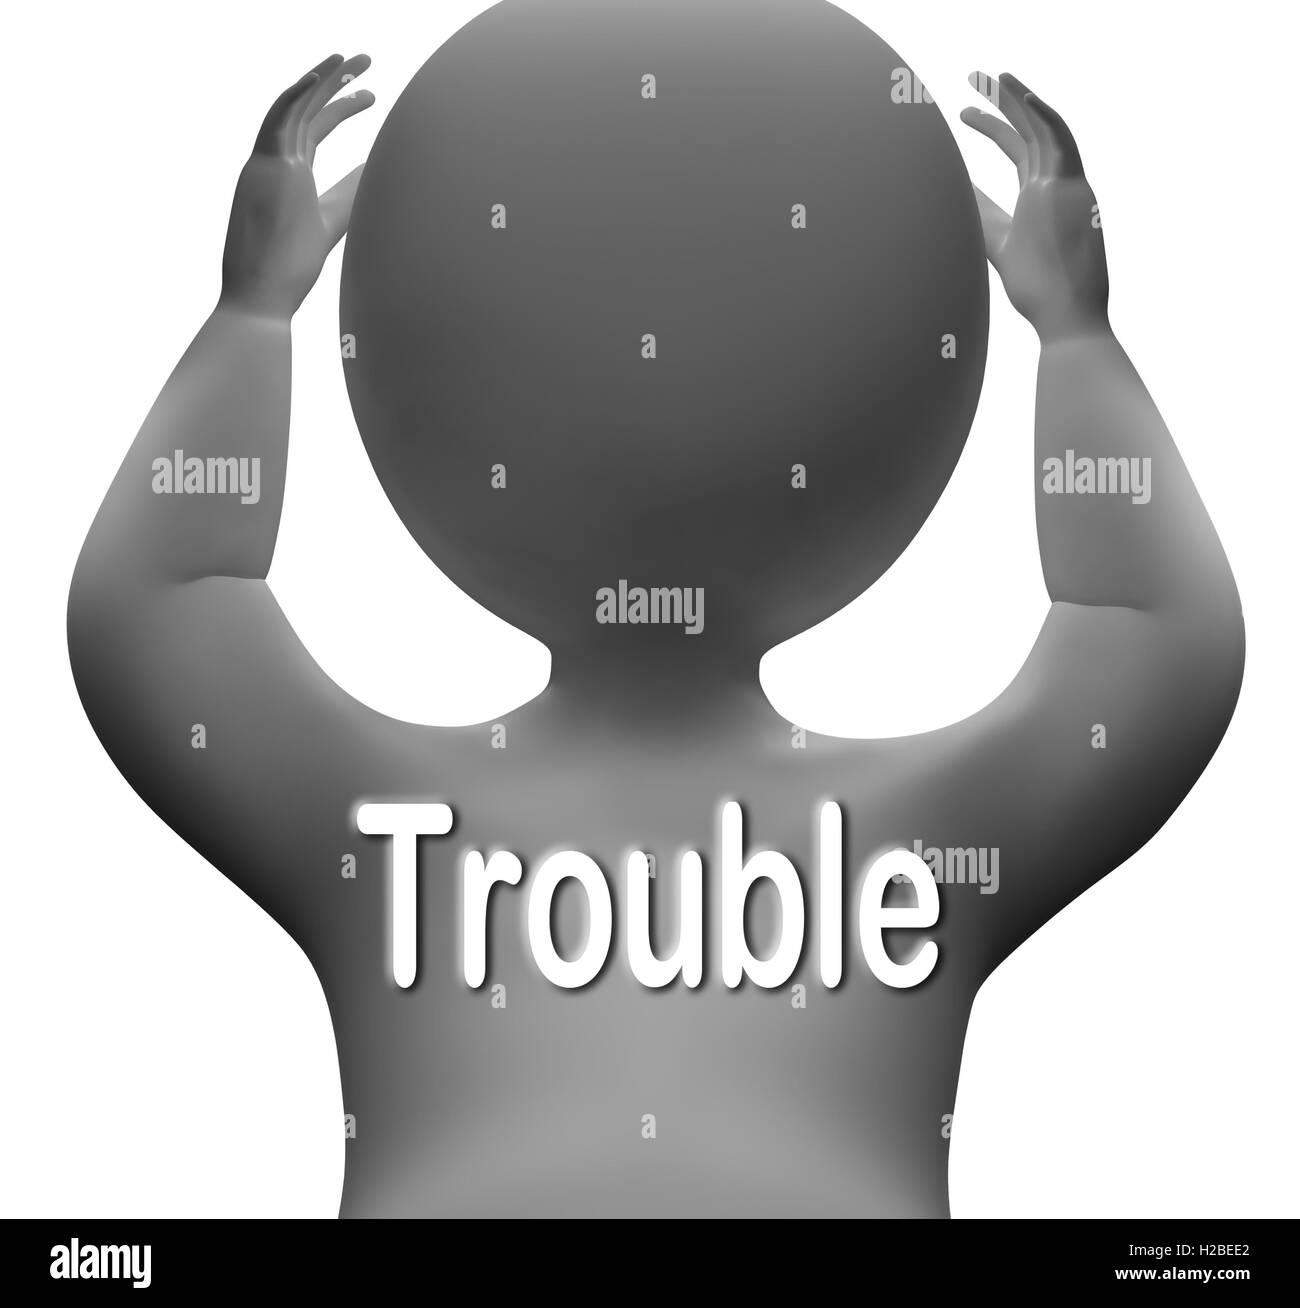 Trouble Character Means Problems Difficulty And Worries - Stock Image